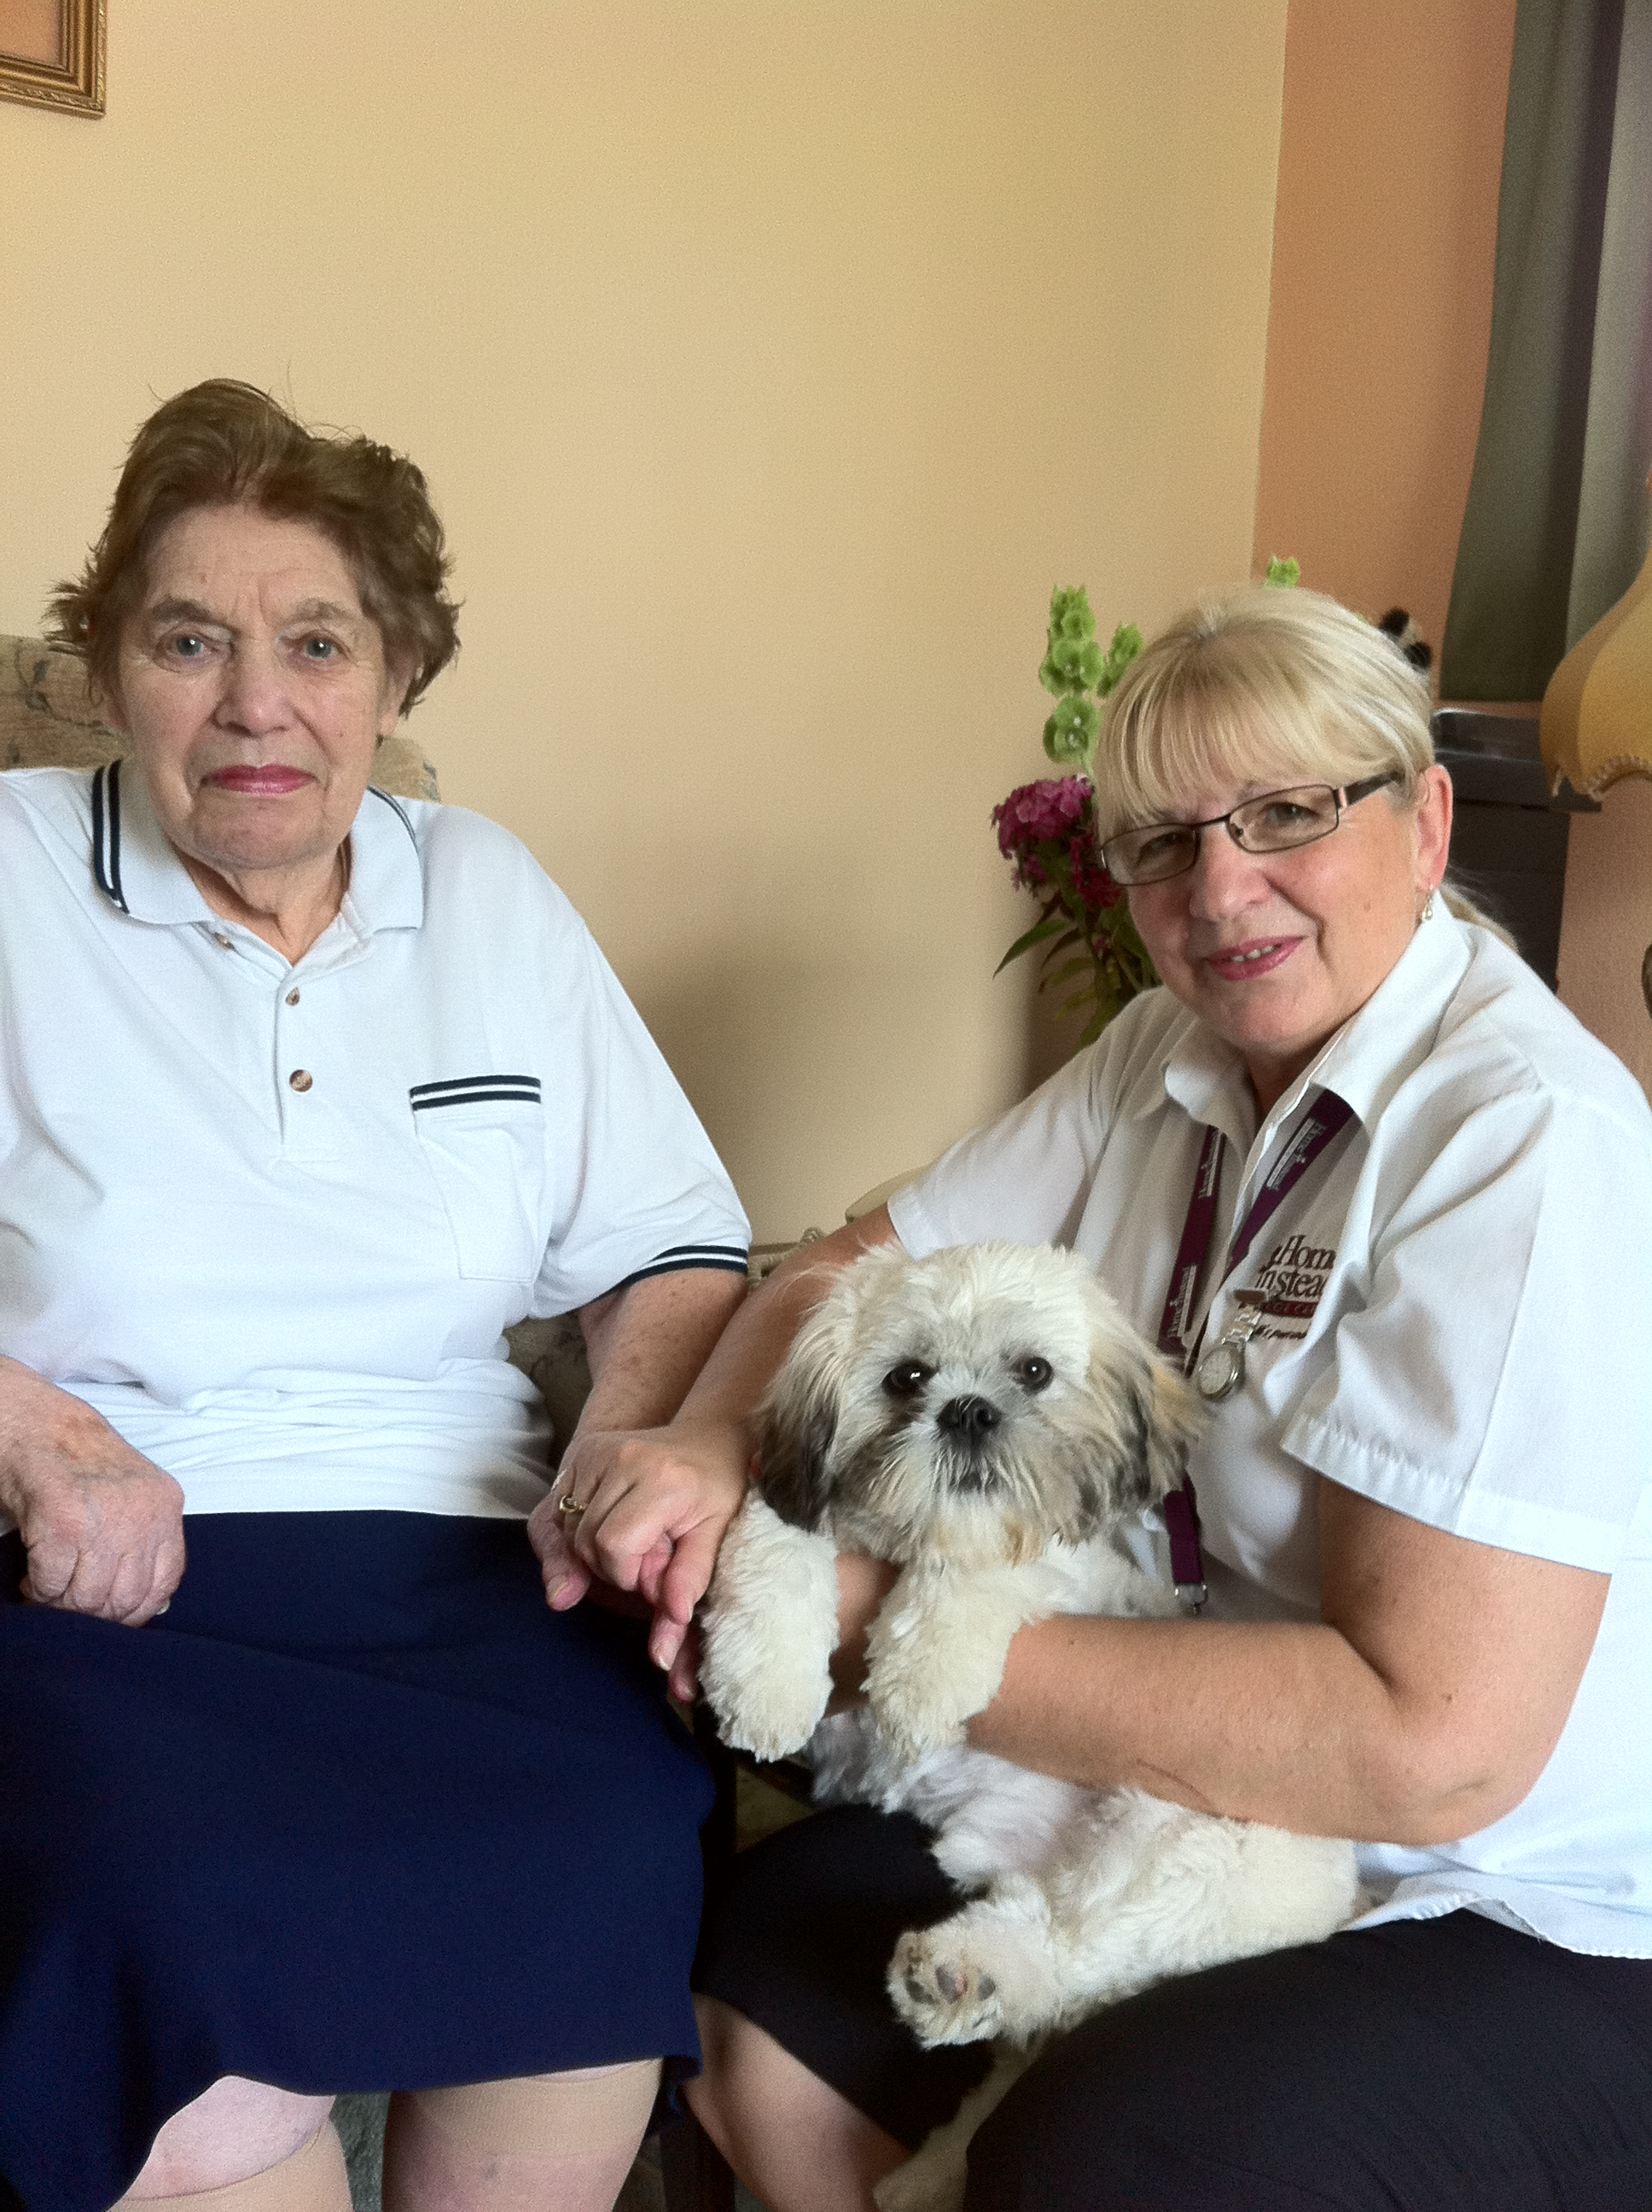 Home Instead South Lincolnshire CAREgiver Lynn Best presenting 6-month-old  Shih Tzu Archie to  85-year-old Home Instead client Betty Snell